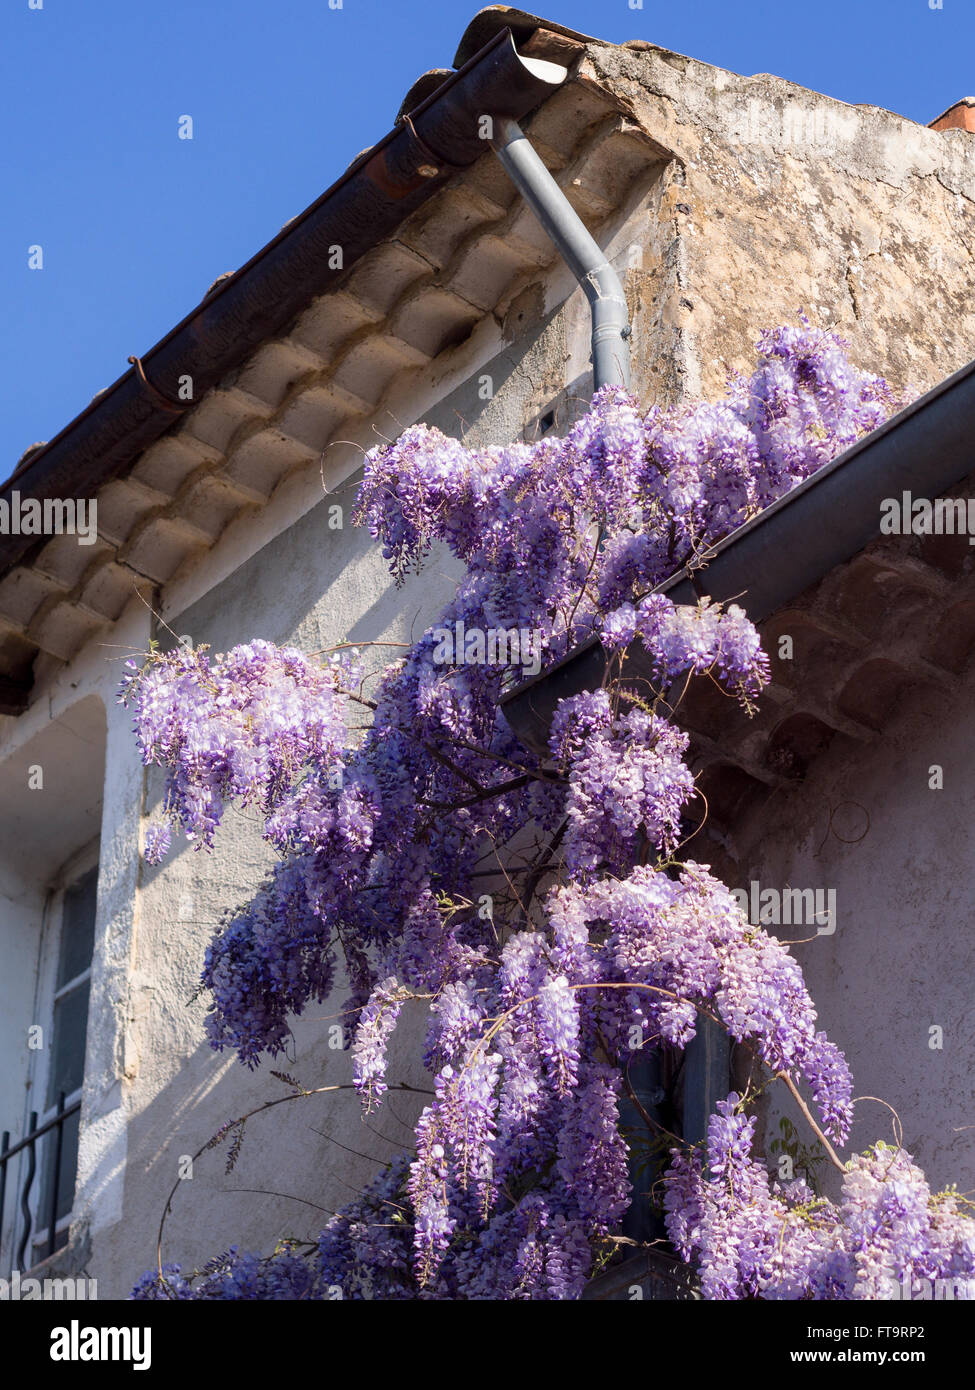 Wisteria draped drain pipe. A extravagantly blooming wisteria climbs up a drain pipe on the side of a house in a - Stock Image